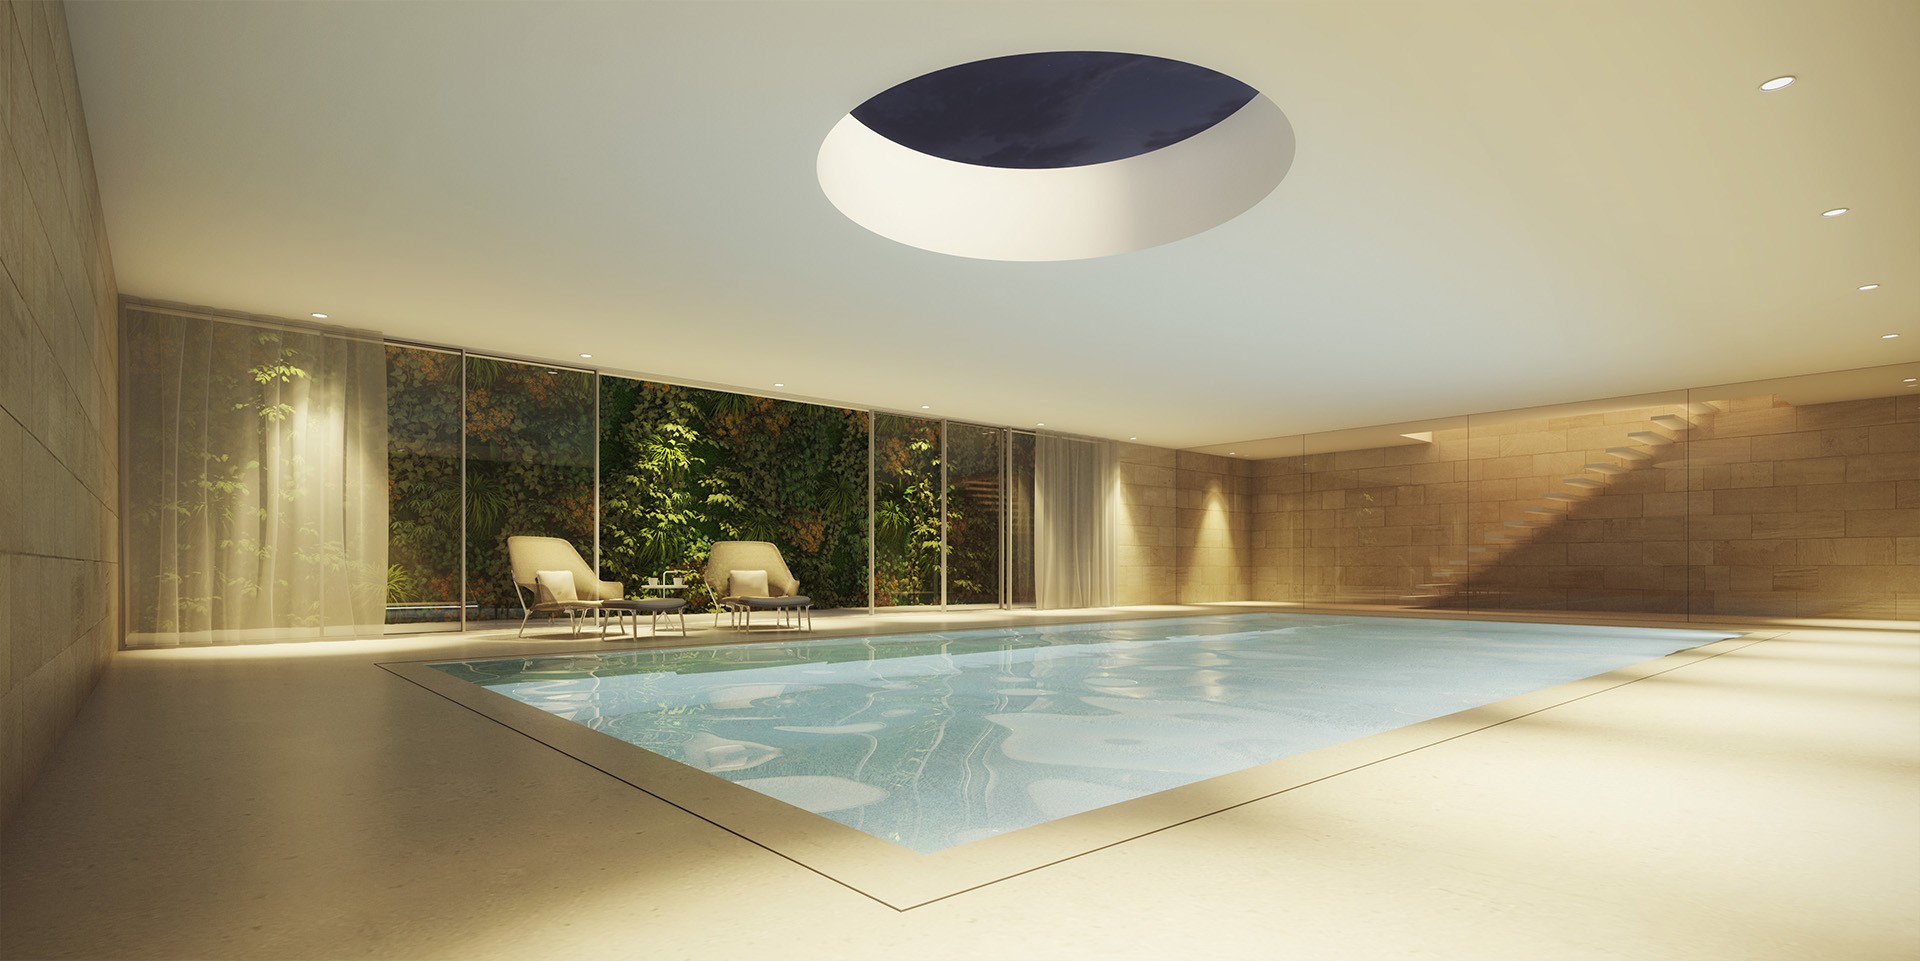 Underground swimming pool hofmandujardin for Underground swimming pool designs